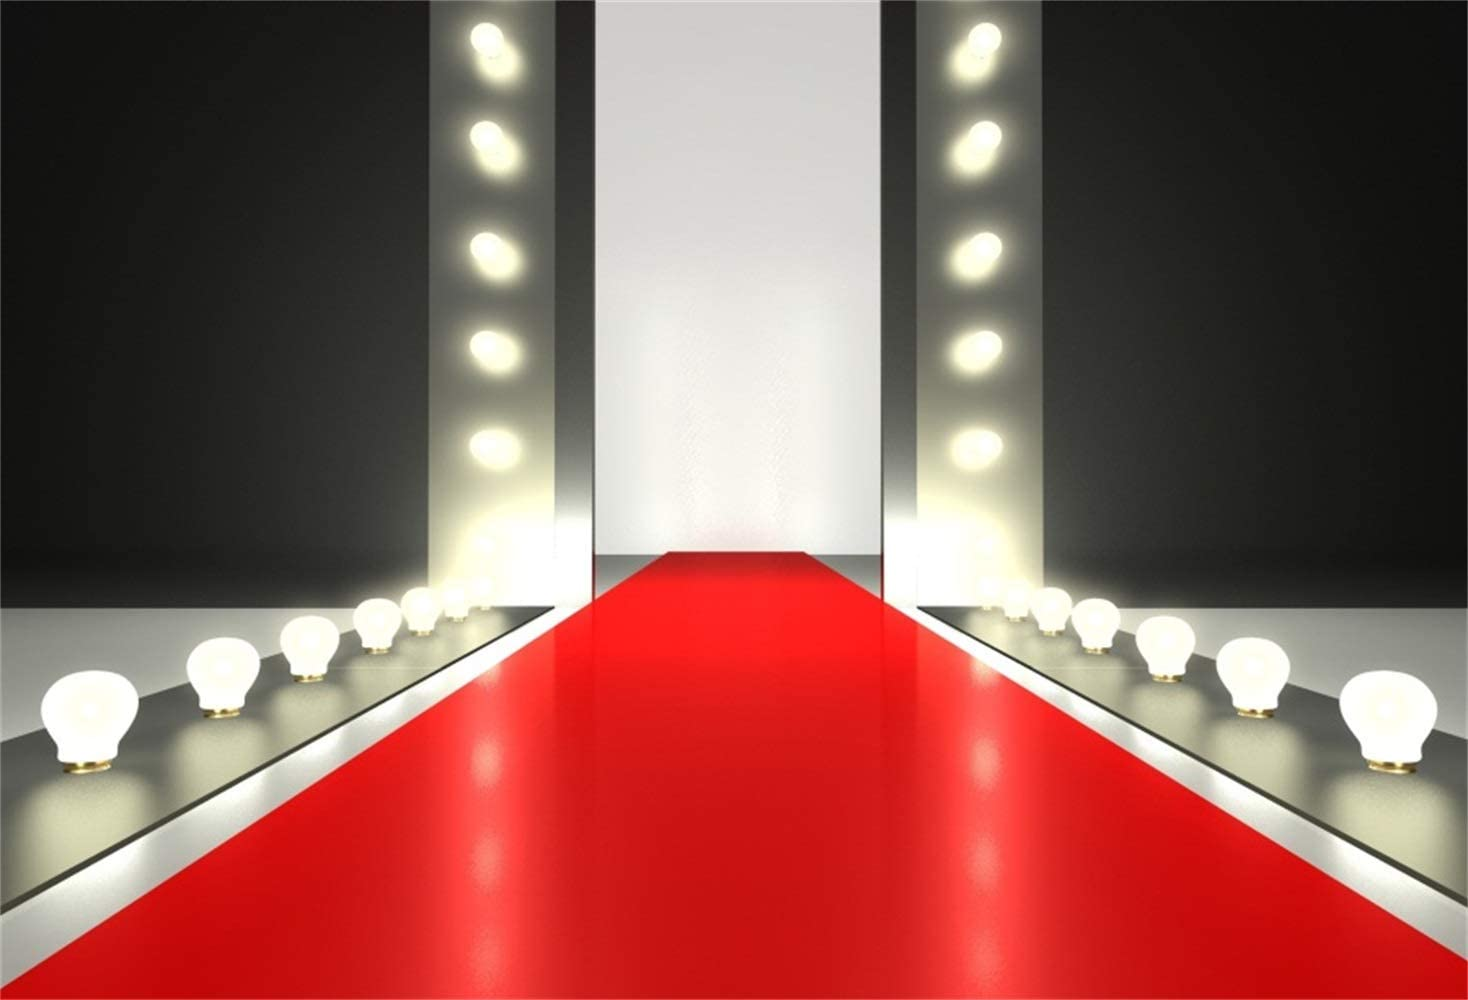 Amazon Com Laeacco Red Carpet Stage Backdrop 10x6 5ft Vinyl Cartoon Vintage Red Carpet Stairs To Throne Spotlight Photography Background Studio Child Adult Bride Wedding Portrait Shoot Show Party Banner Camera